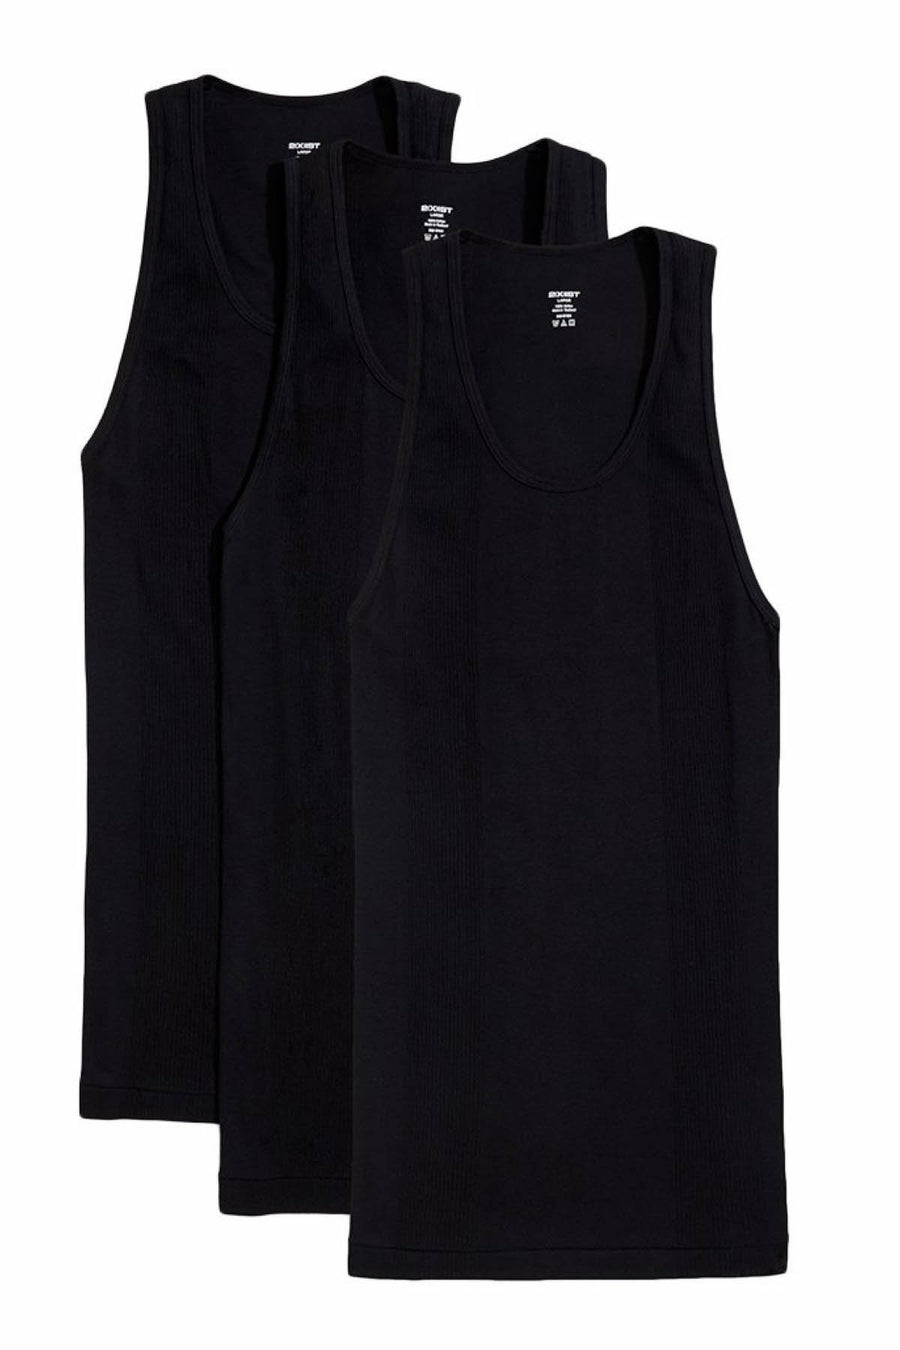 Tank Tops - 2(X)IST Black Essentials Athletic Tank 3-Pack -   jetcube